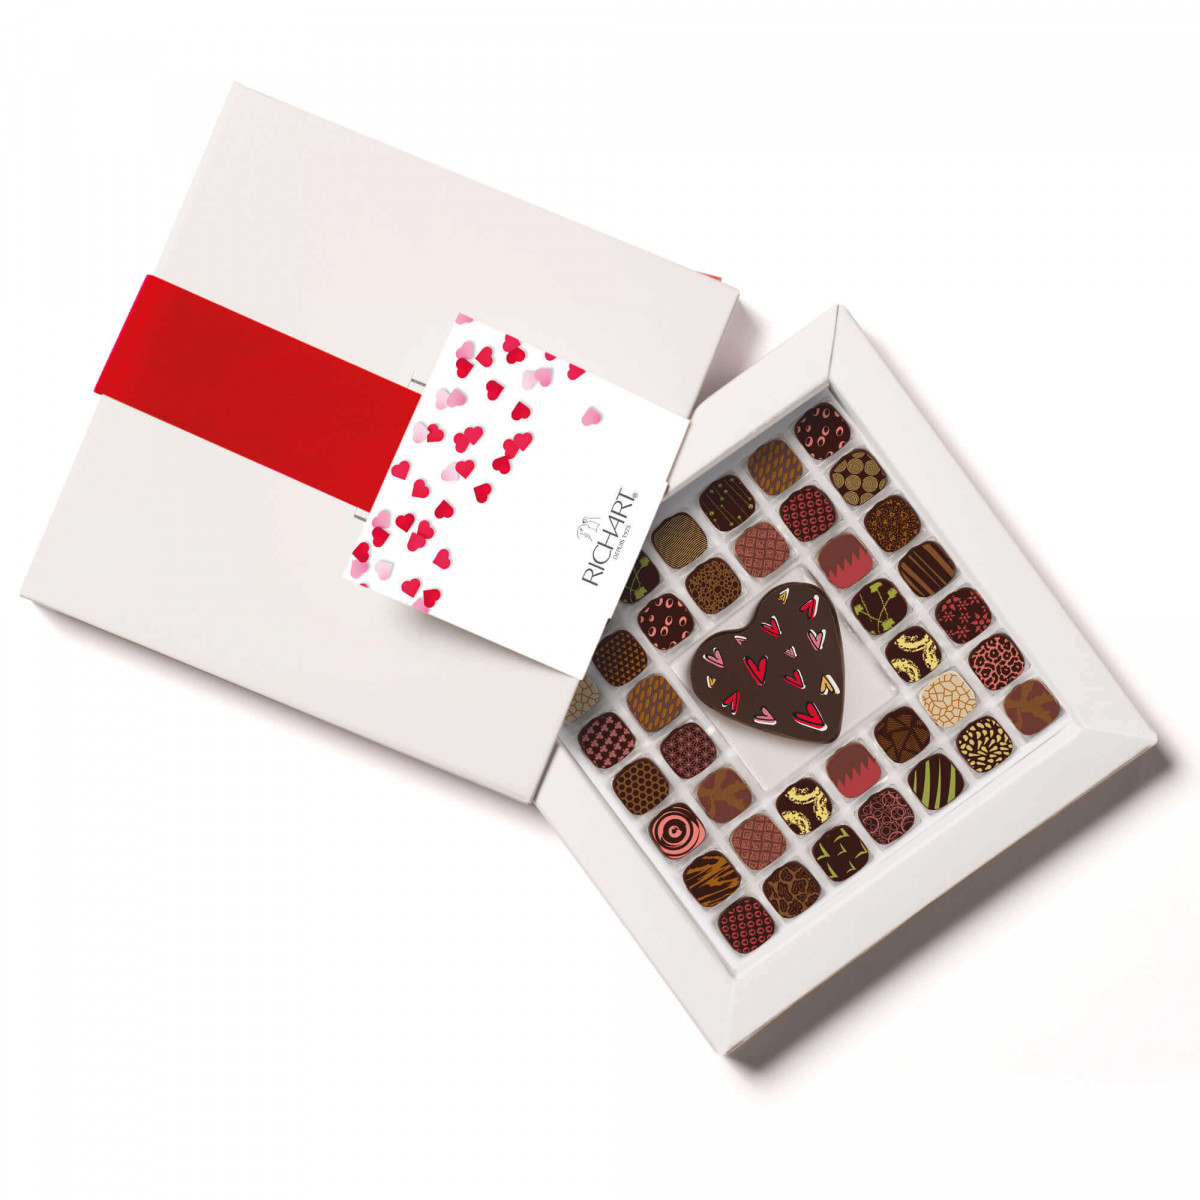 RICHART Chocolates - Intense Love assortment of filled chocolates and Heart shape morsel